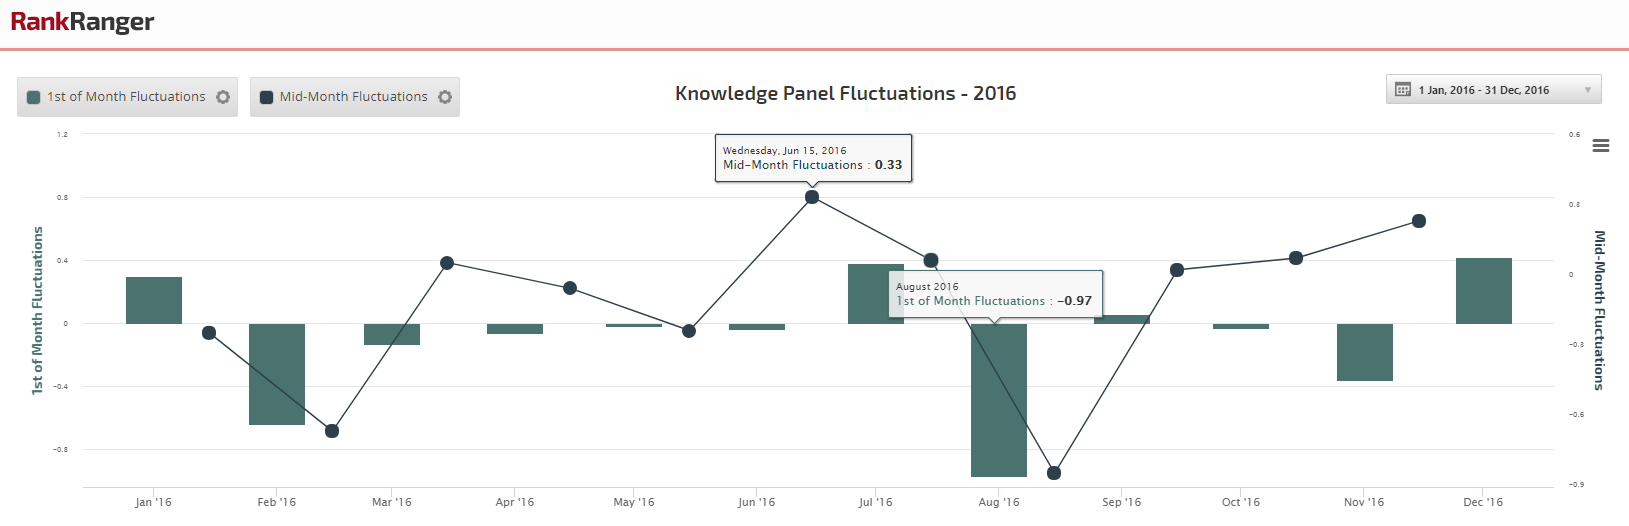 Knowledge Panel 2016 Fluctuations